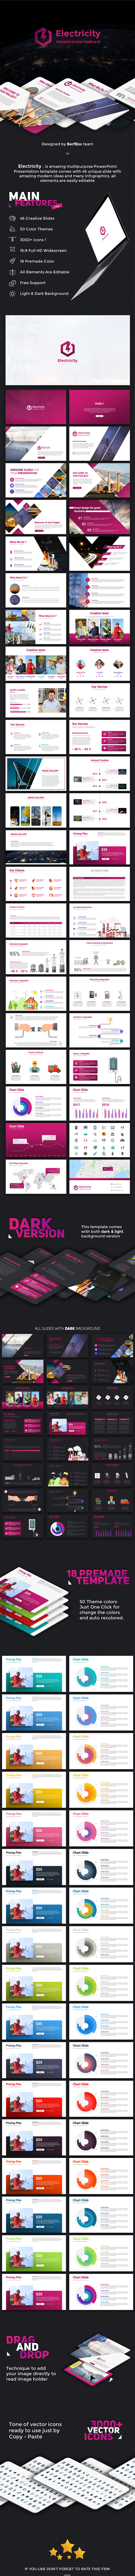 Electricity PowerPoint Presentation Template - PowerPoint Templates Presentation Templates